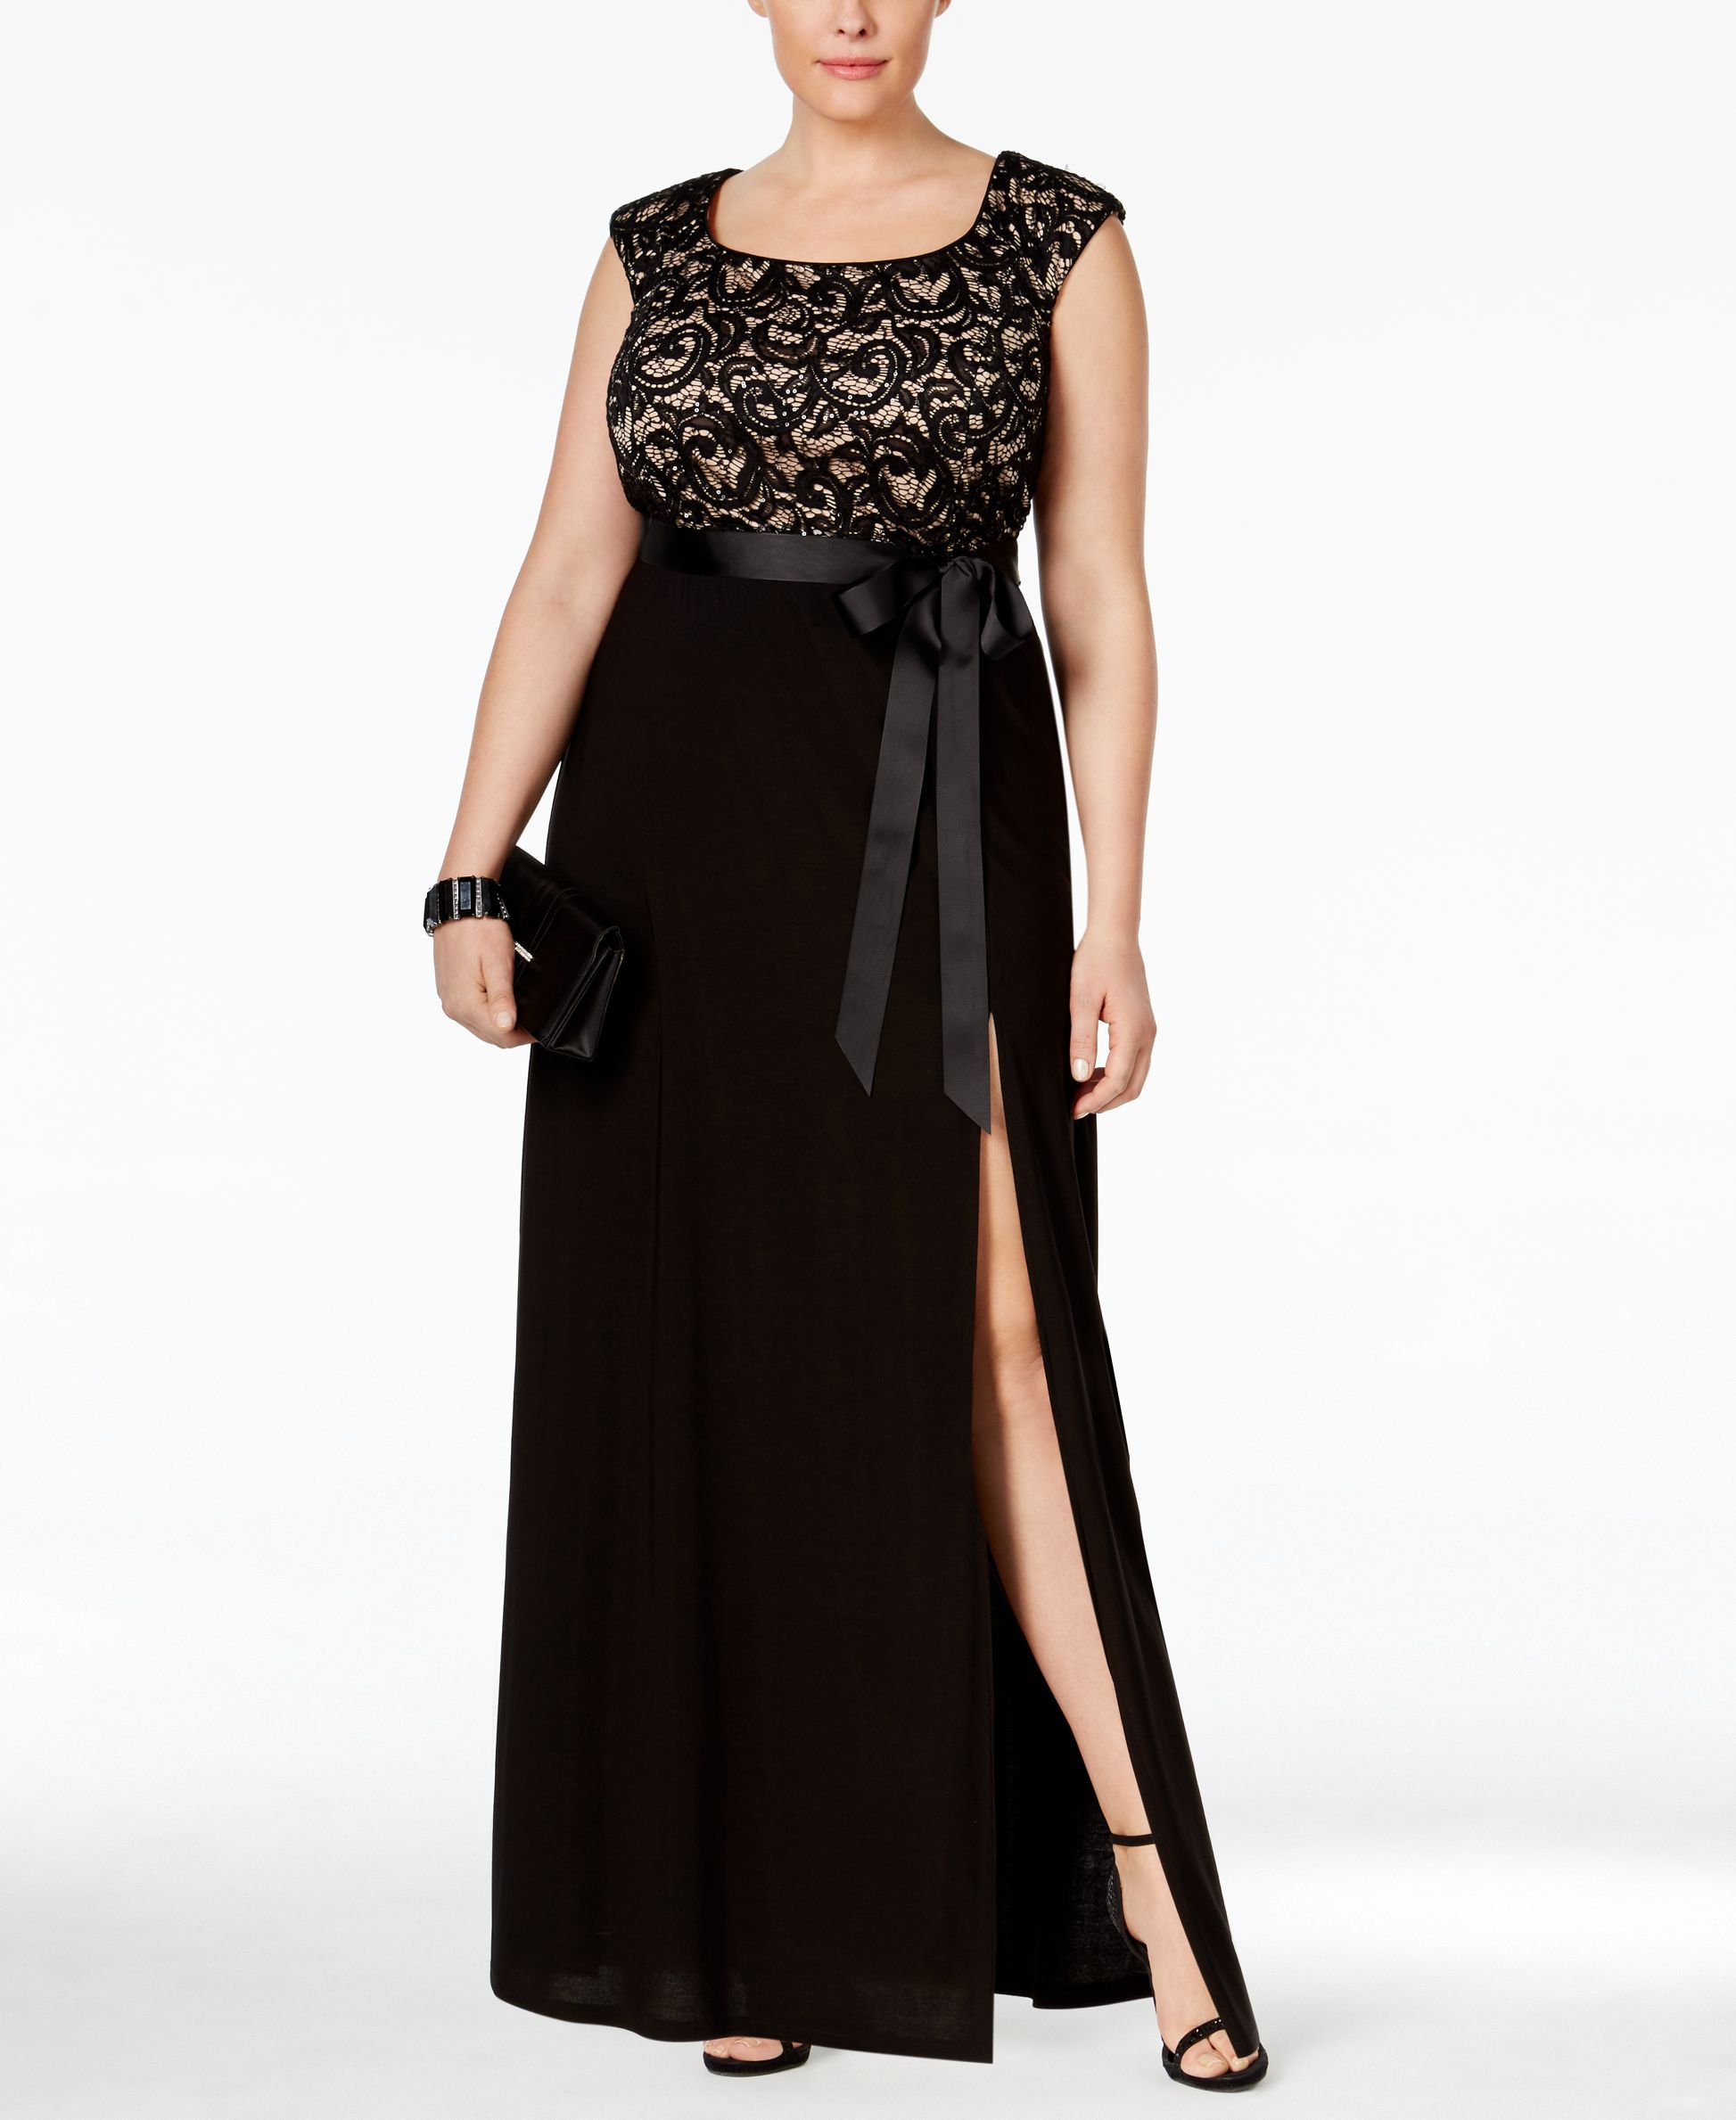 R u m richards plus size capsleeve lace bodice gown products